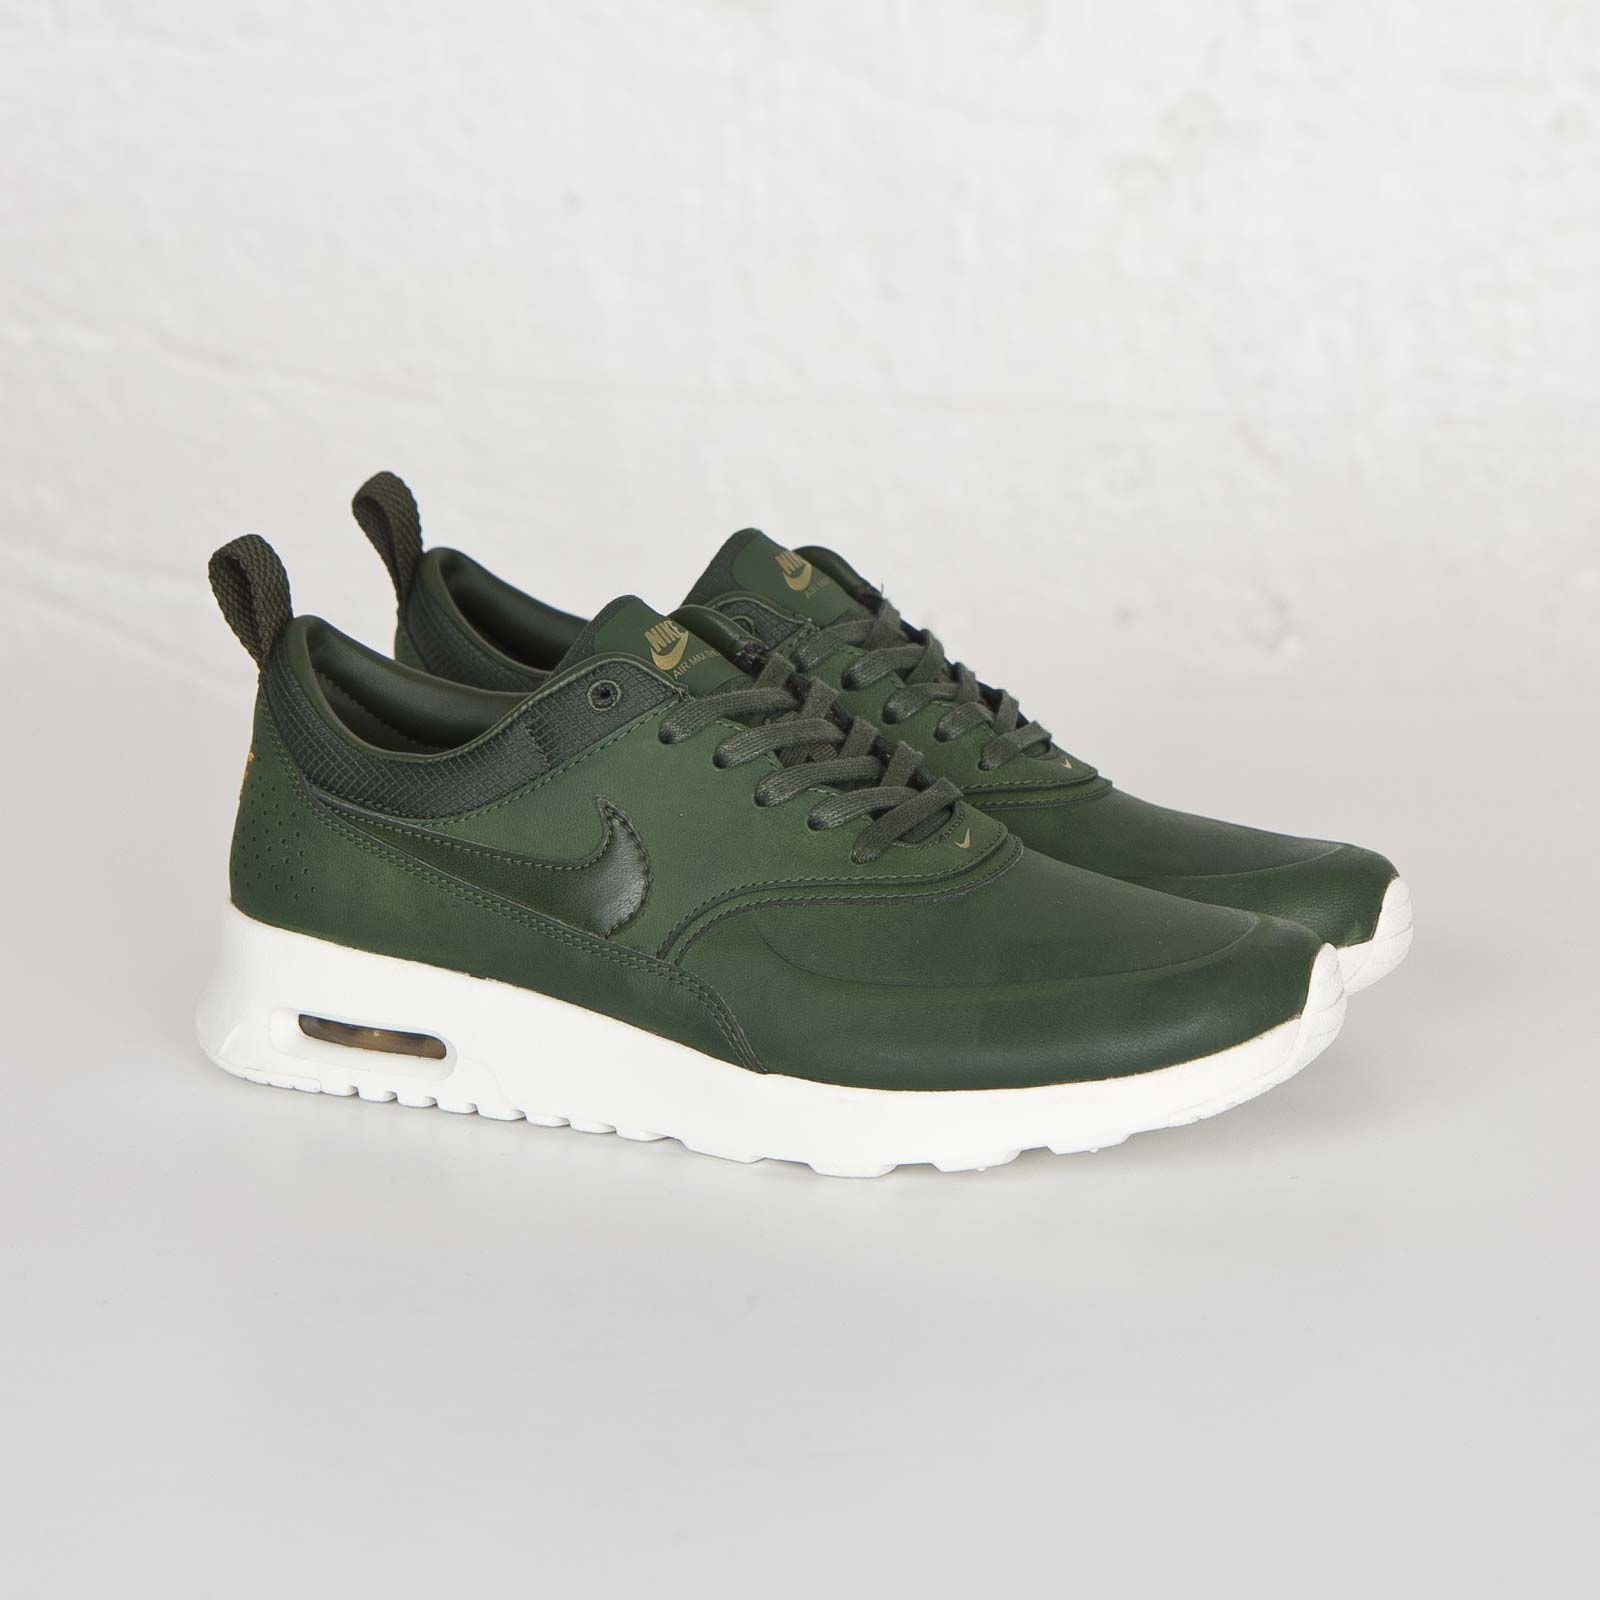 new style 3c51c 2f4df Nike Wmns Air Max Thea Premium